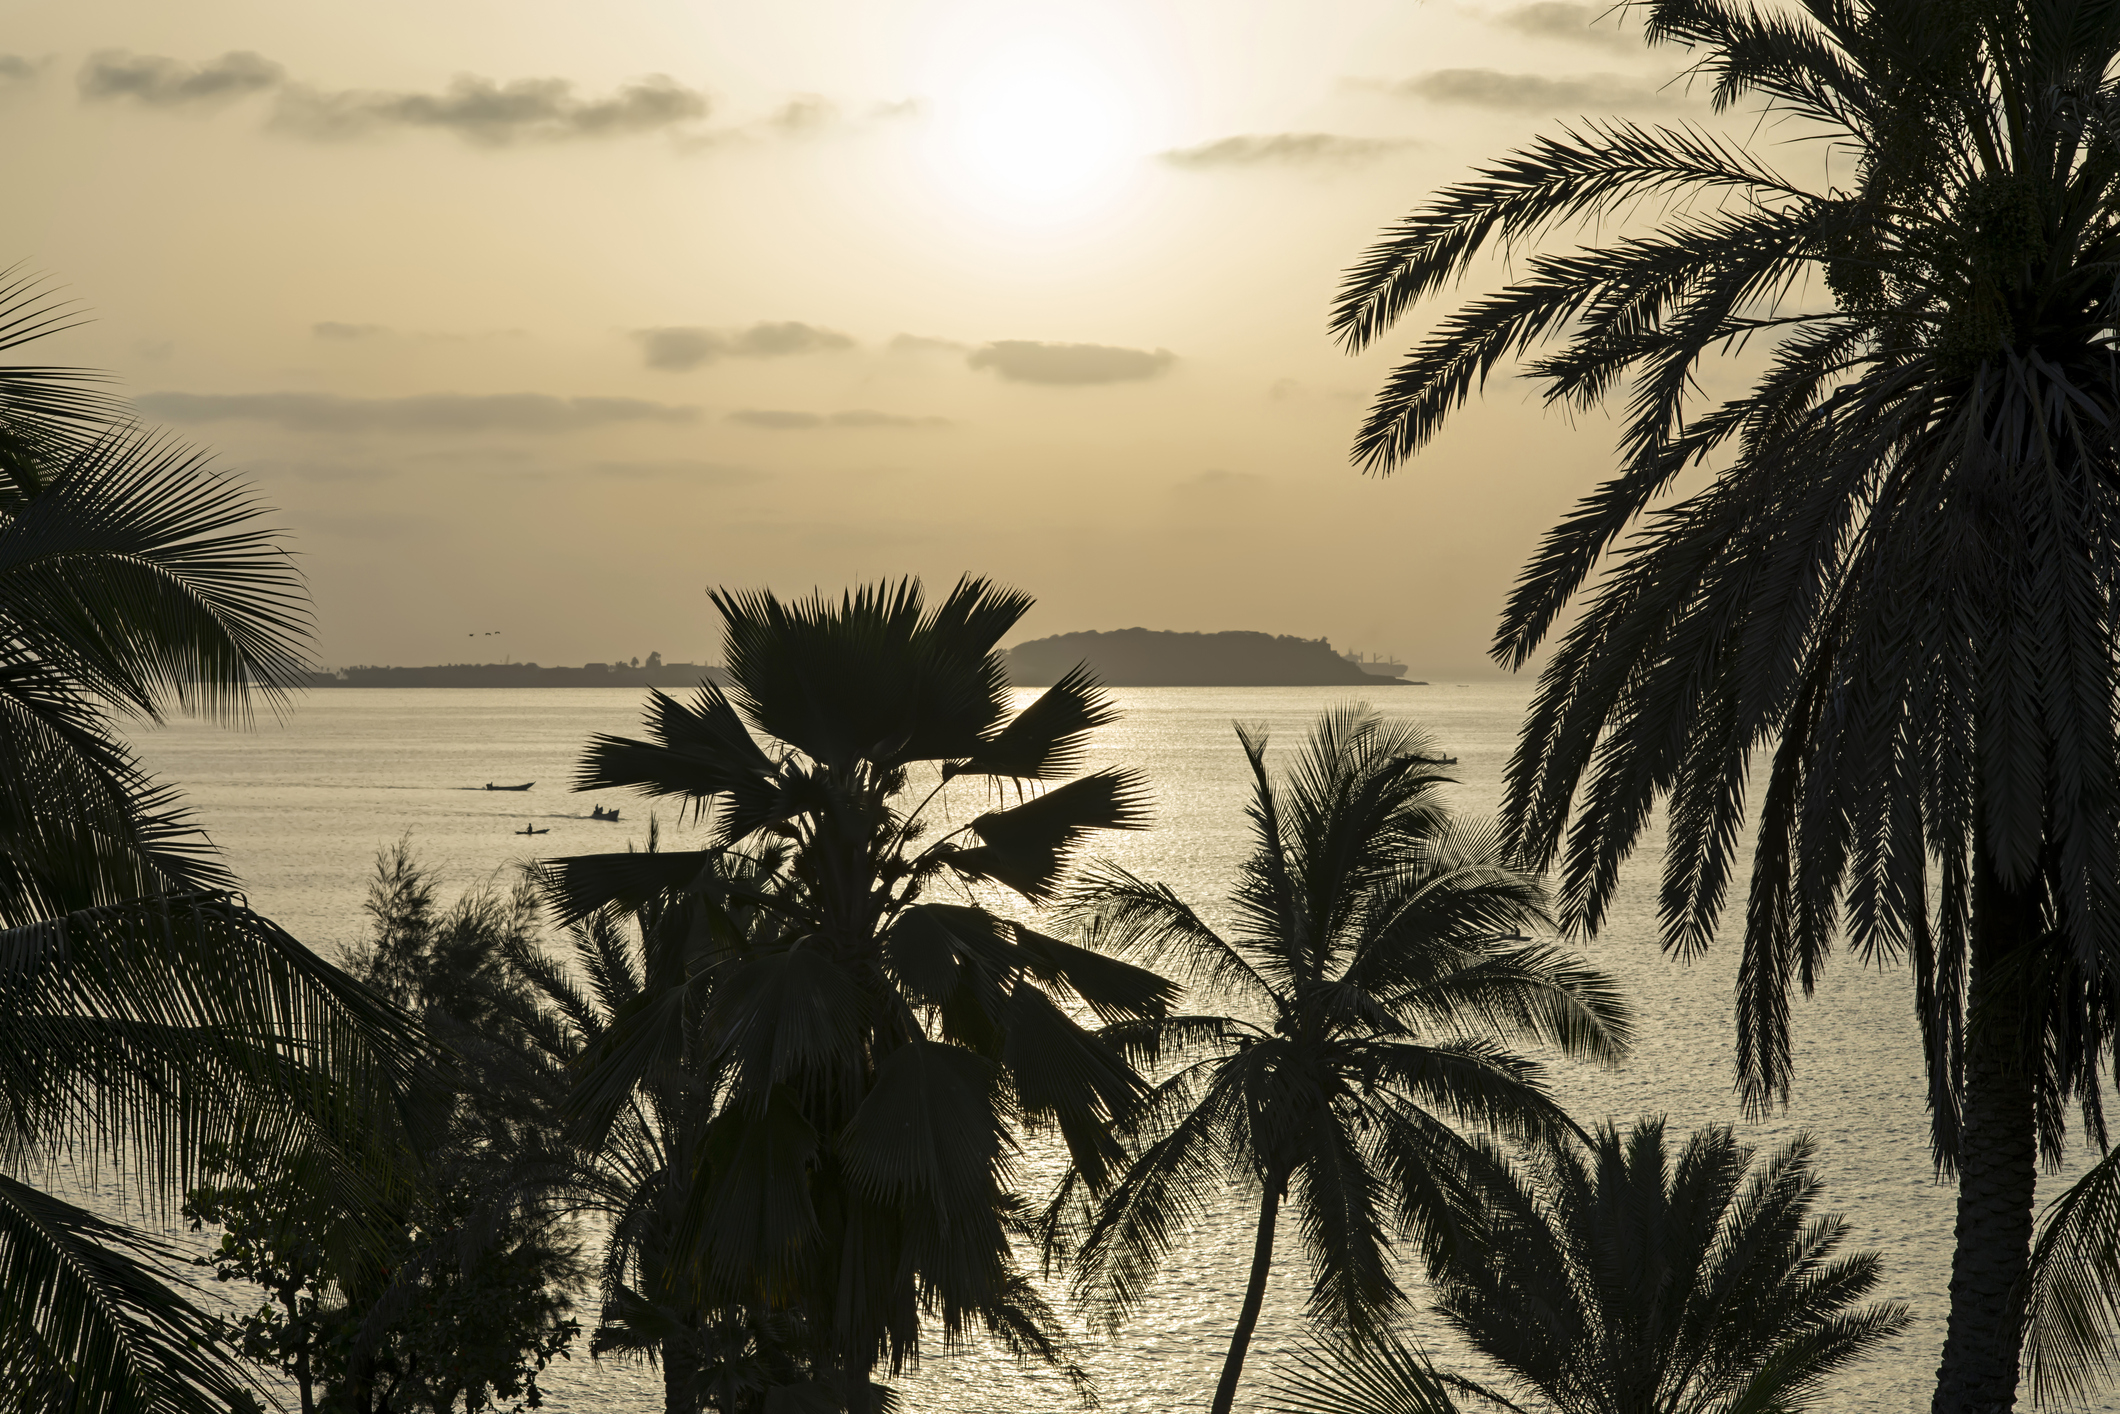 Tropical sunrise – Silhouettes of coconut palm trees